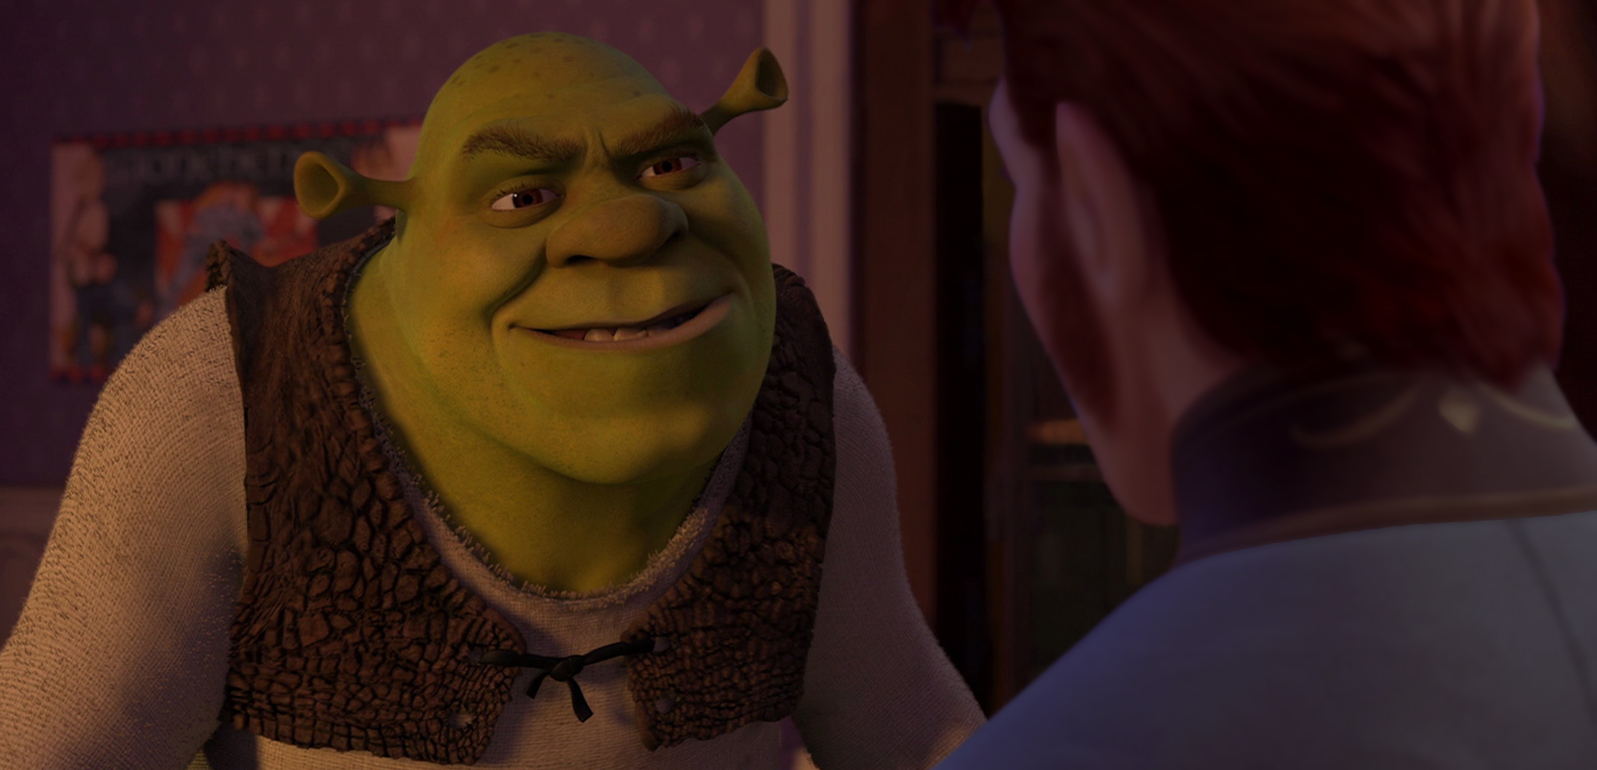 shrek and functionalism A summary of conflict perspective in 's deviance learn exactly what happened in this chapter, scene, or section of deviance and what it means perfect for acing essays, tests, and quizzes, as well as for writing lesson plans.